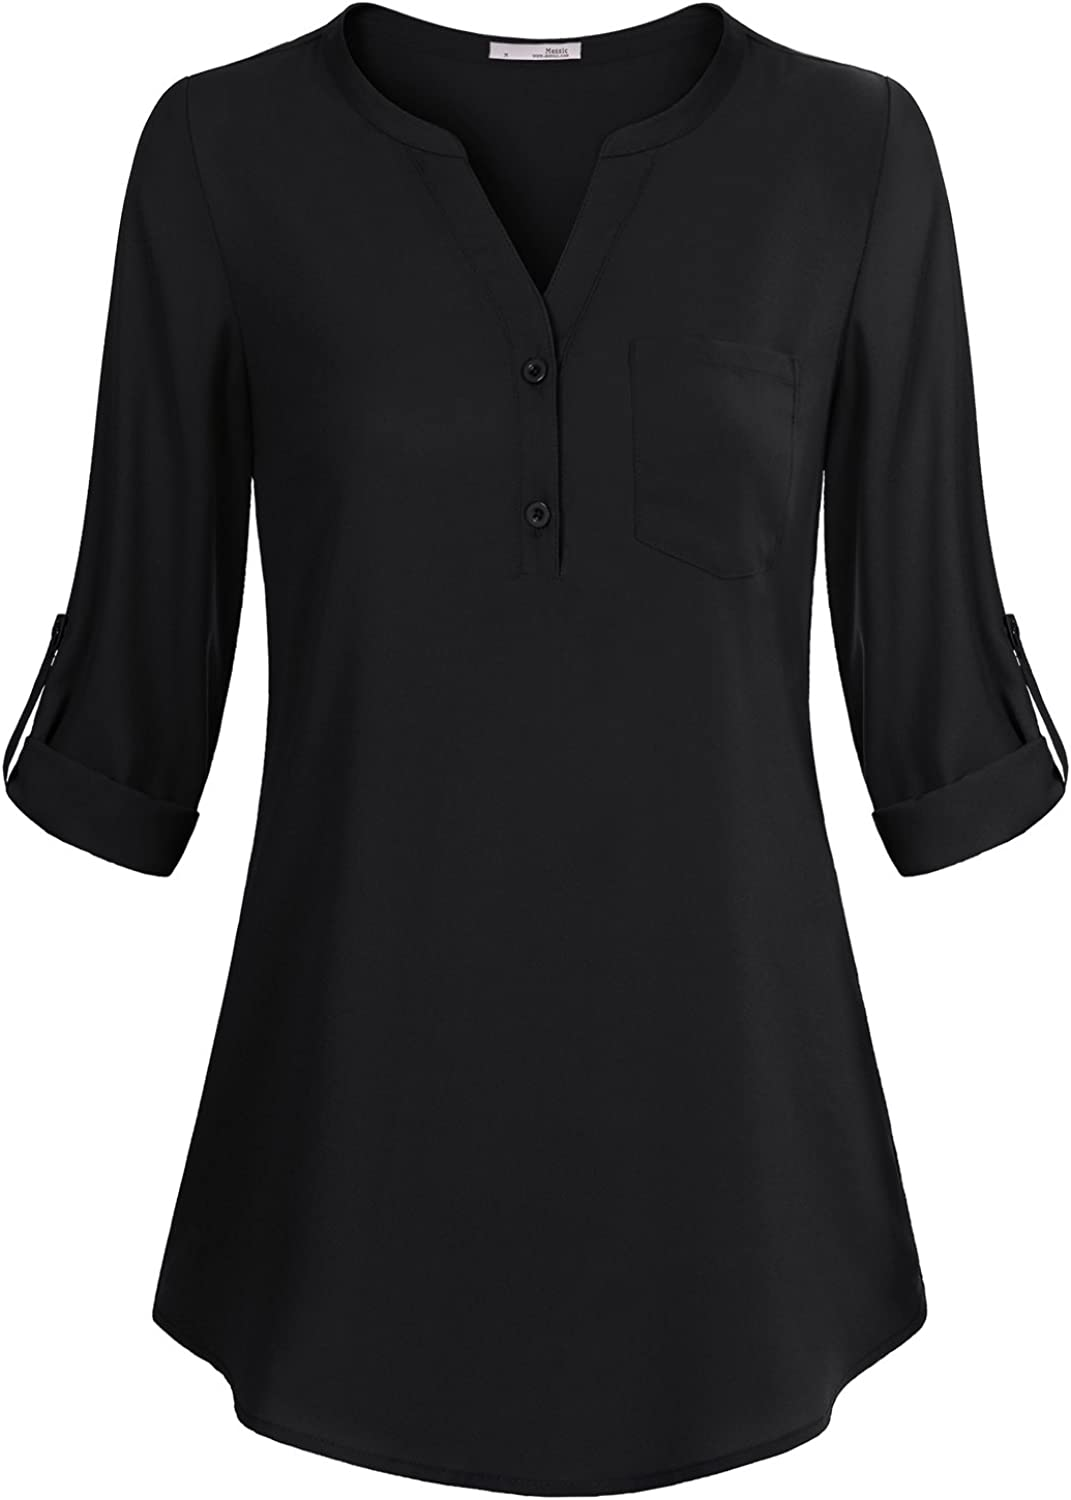 Messic Women's V-Neck Blouses 3/4 Roll-up Sleeve Button Casual Chiffon Tunic Shirt